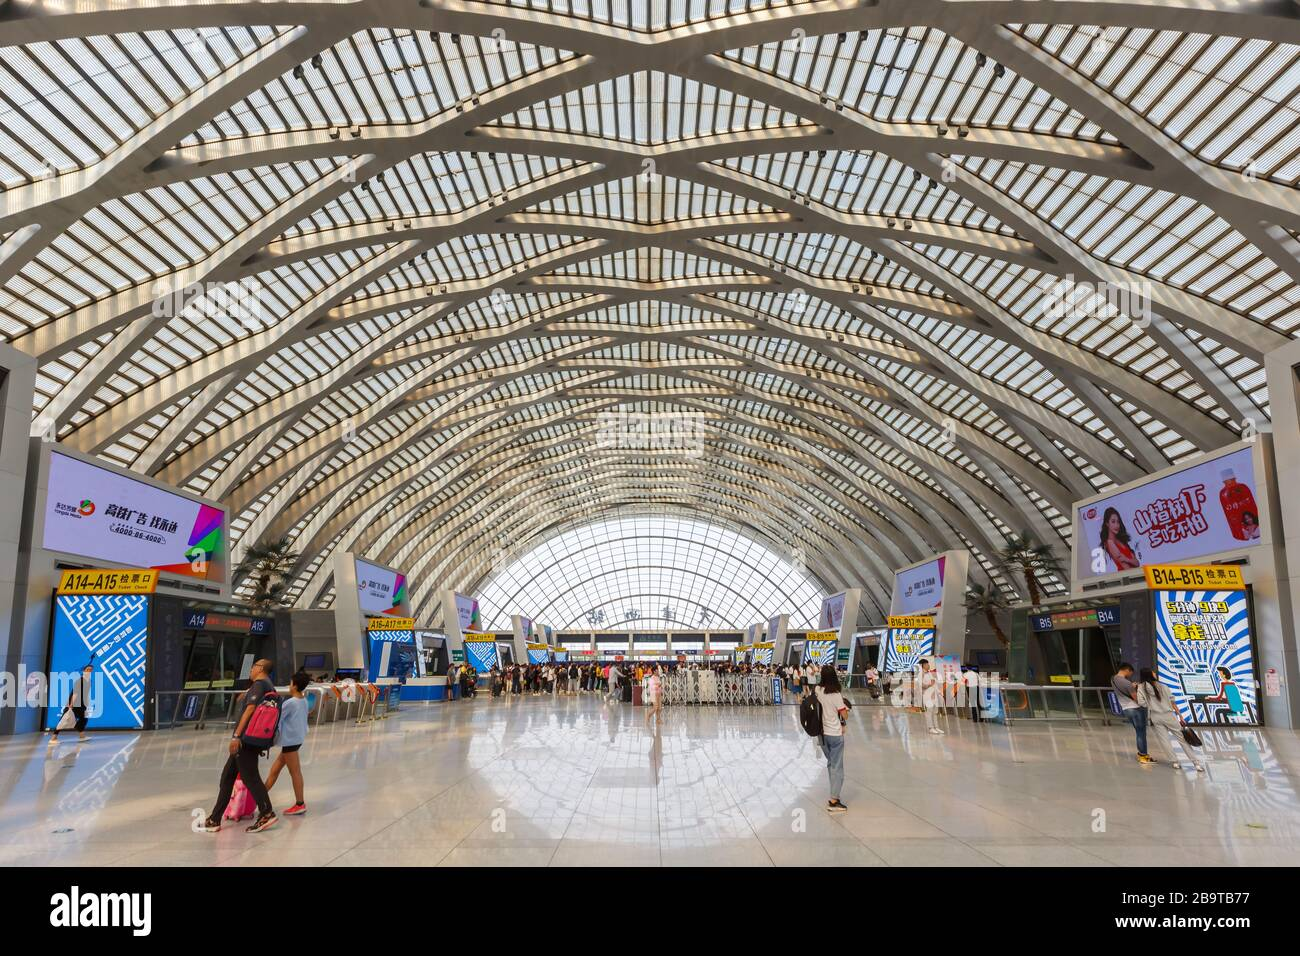 Tianjin, China – September 29, 2019: Tianjin West Station modern architecture railway transport in China. Stock Photo